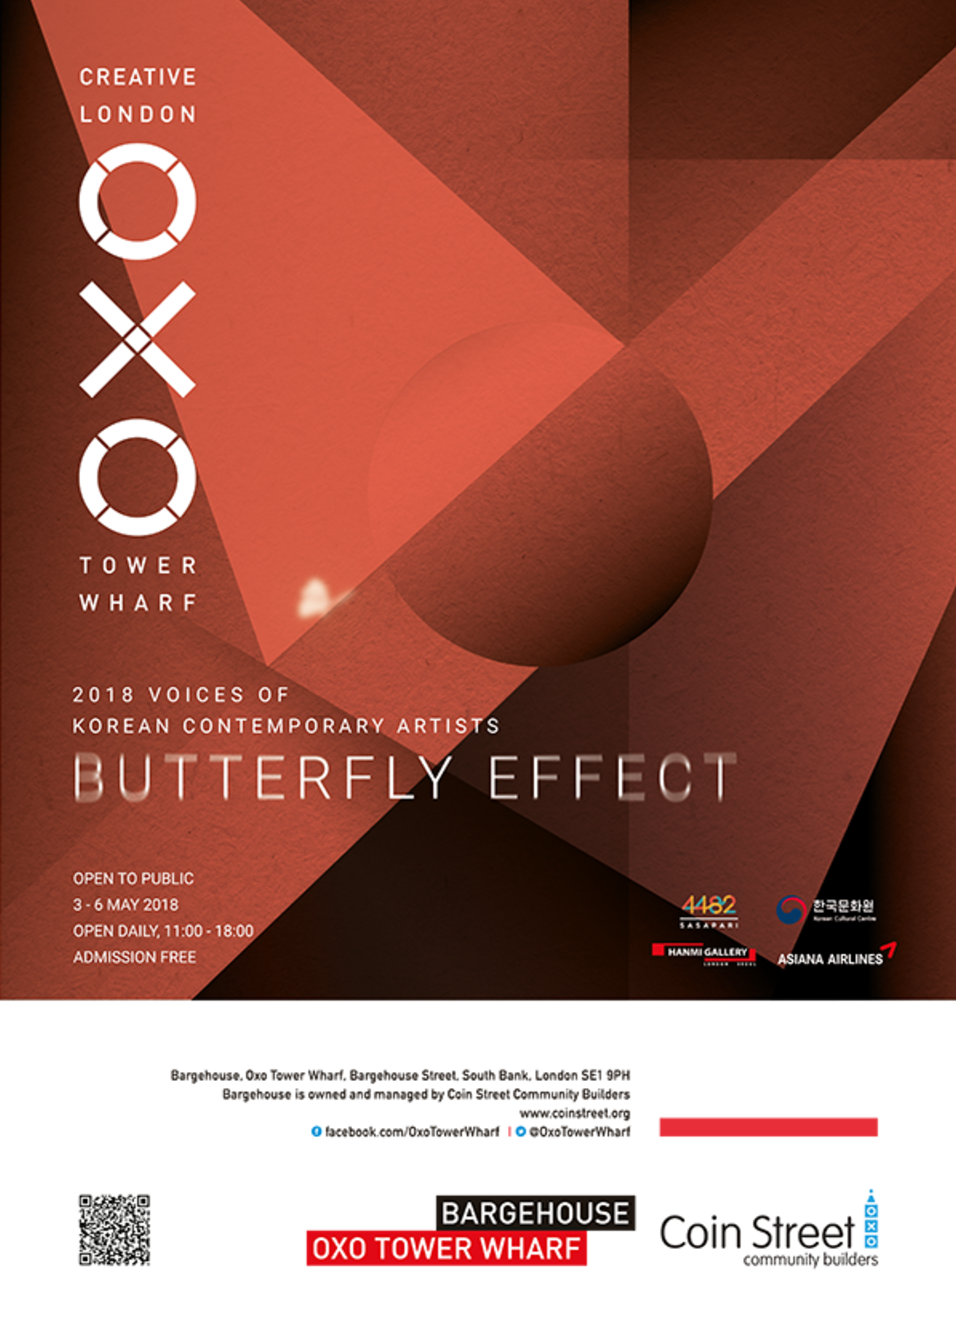 2018 Voices of Korean Contemporary Artists: Butterfly Effect, London, 2018